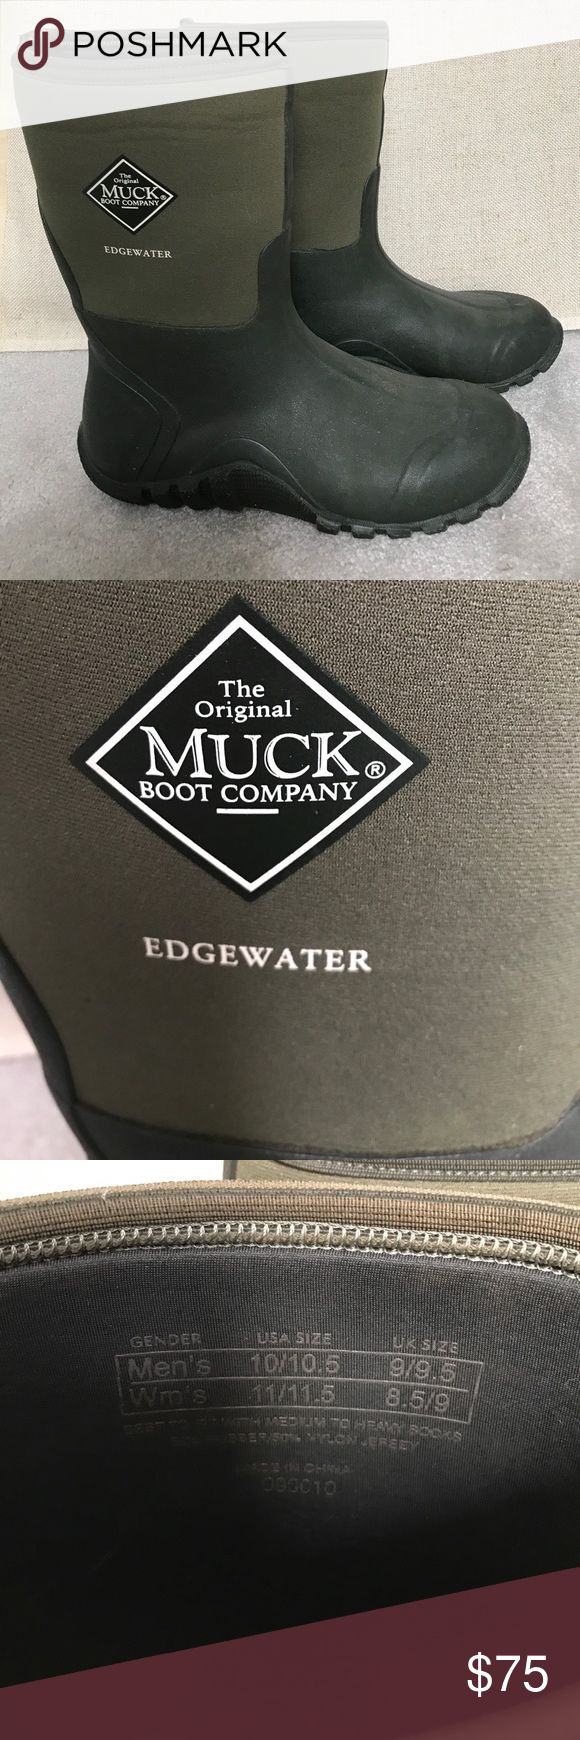 MUCK Edgewater boots 11-11.5 Like new. Steel toe. MUCK Shoes Winter & Rain Boots